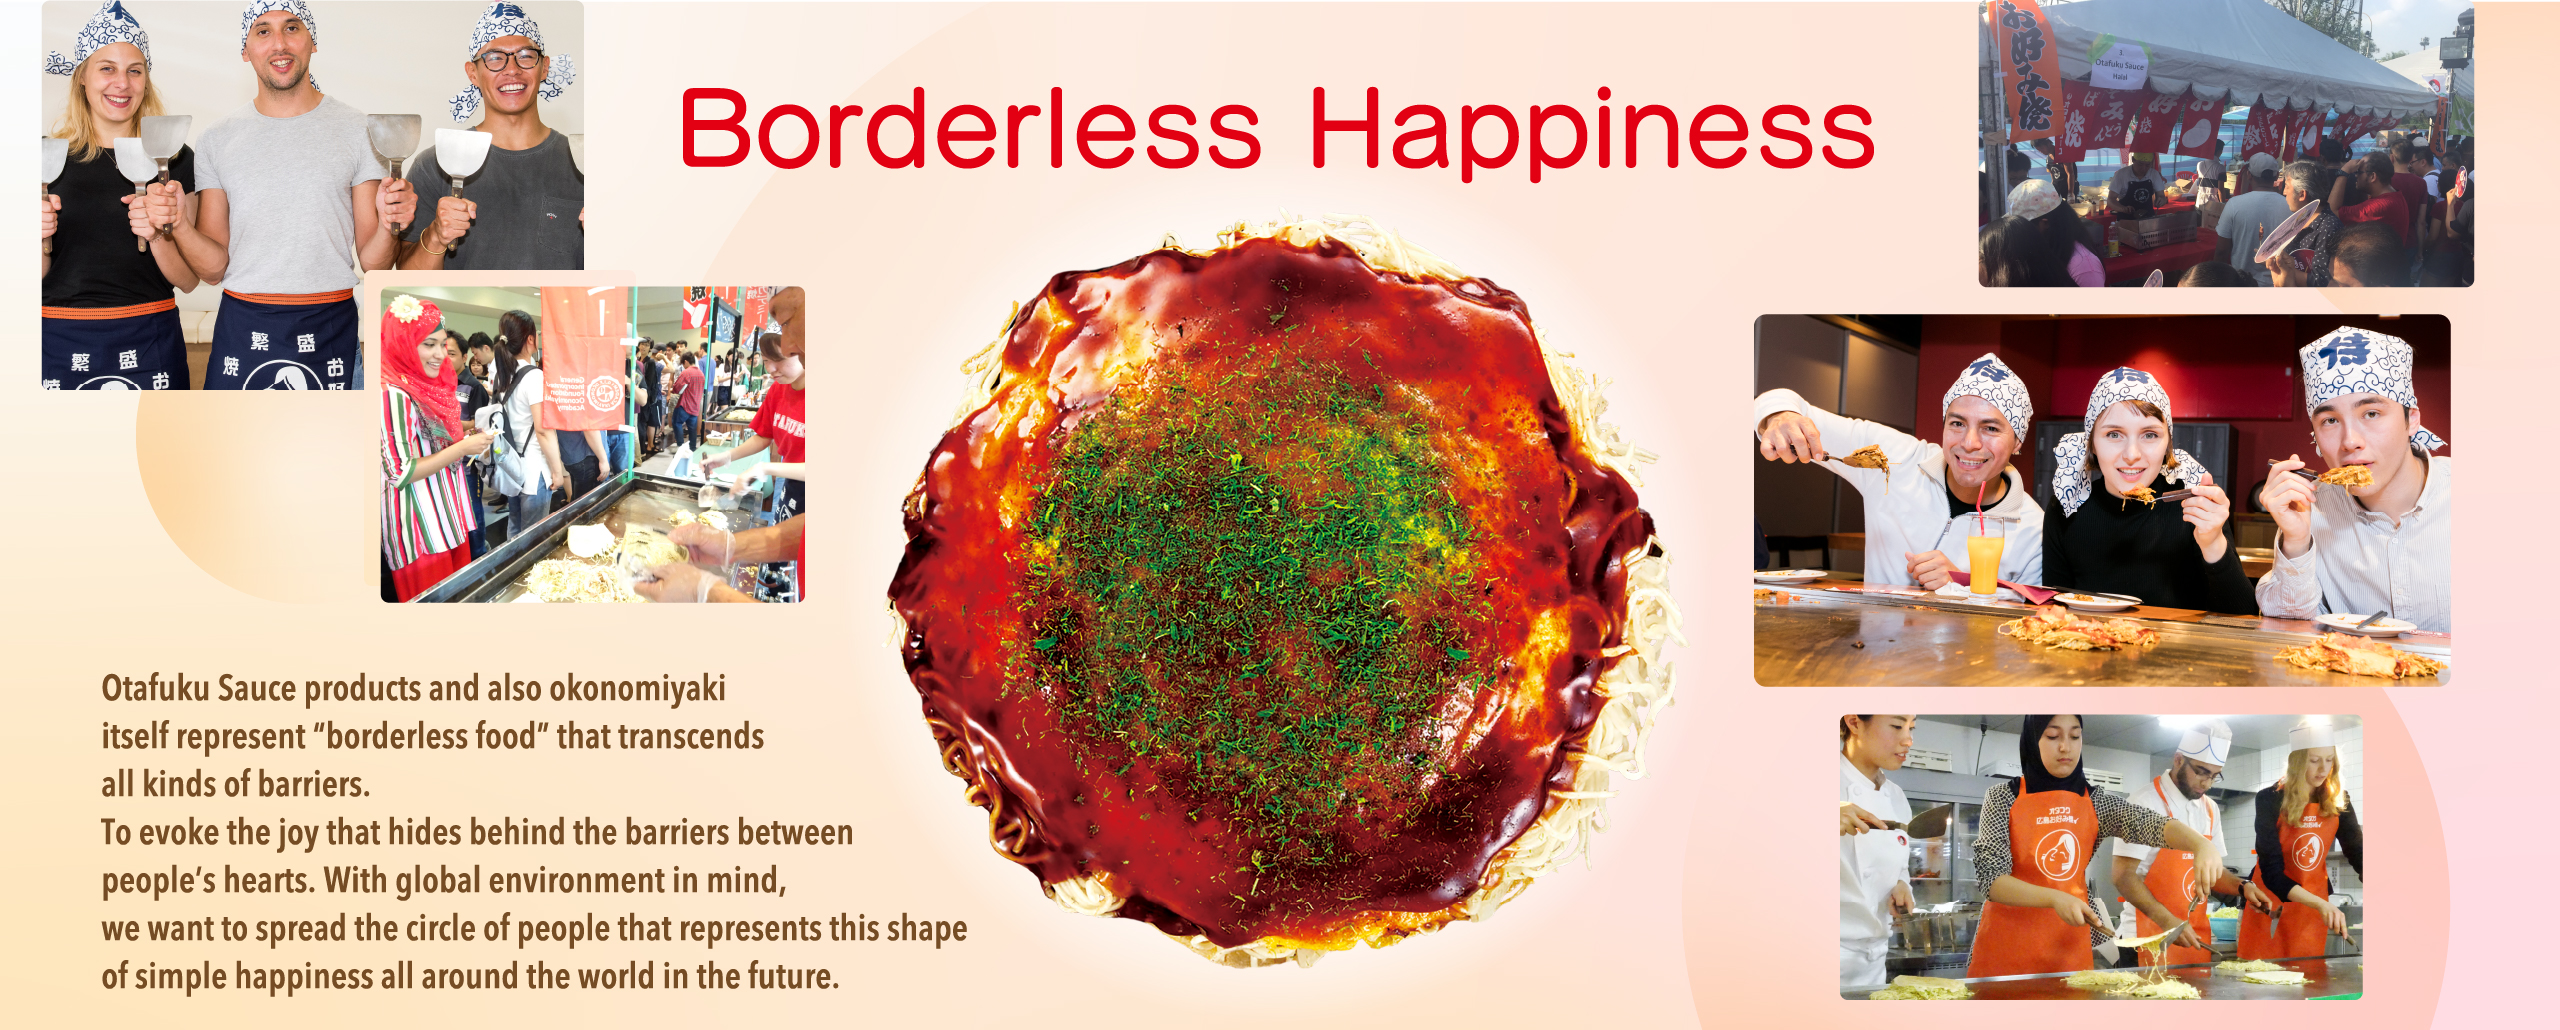 "Borderless Happiness Otafuku Sauce products and also okonomiyaki itself represent ""borderless food"" that transcends all kinds of barriers. To evoke the joy that hides behind the barriers between people's hearts. With global environment in mind, we want to spread the circle of people that represents this shape of simple happiness all around the world in the future."